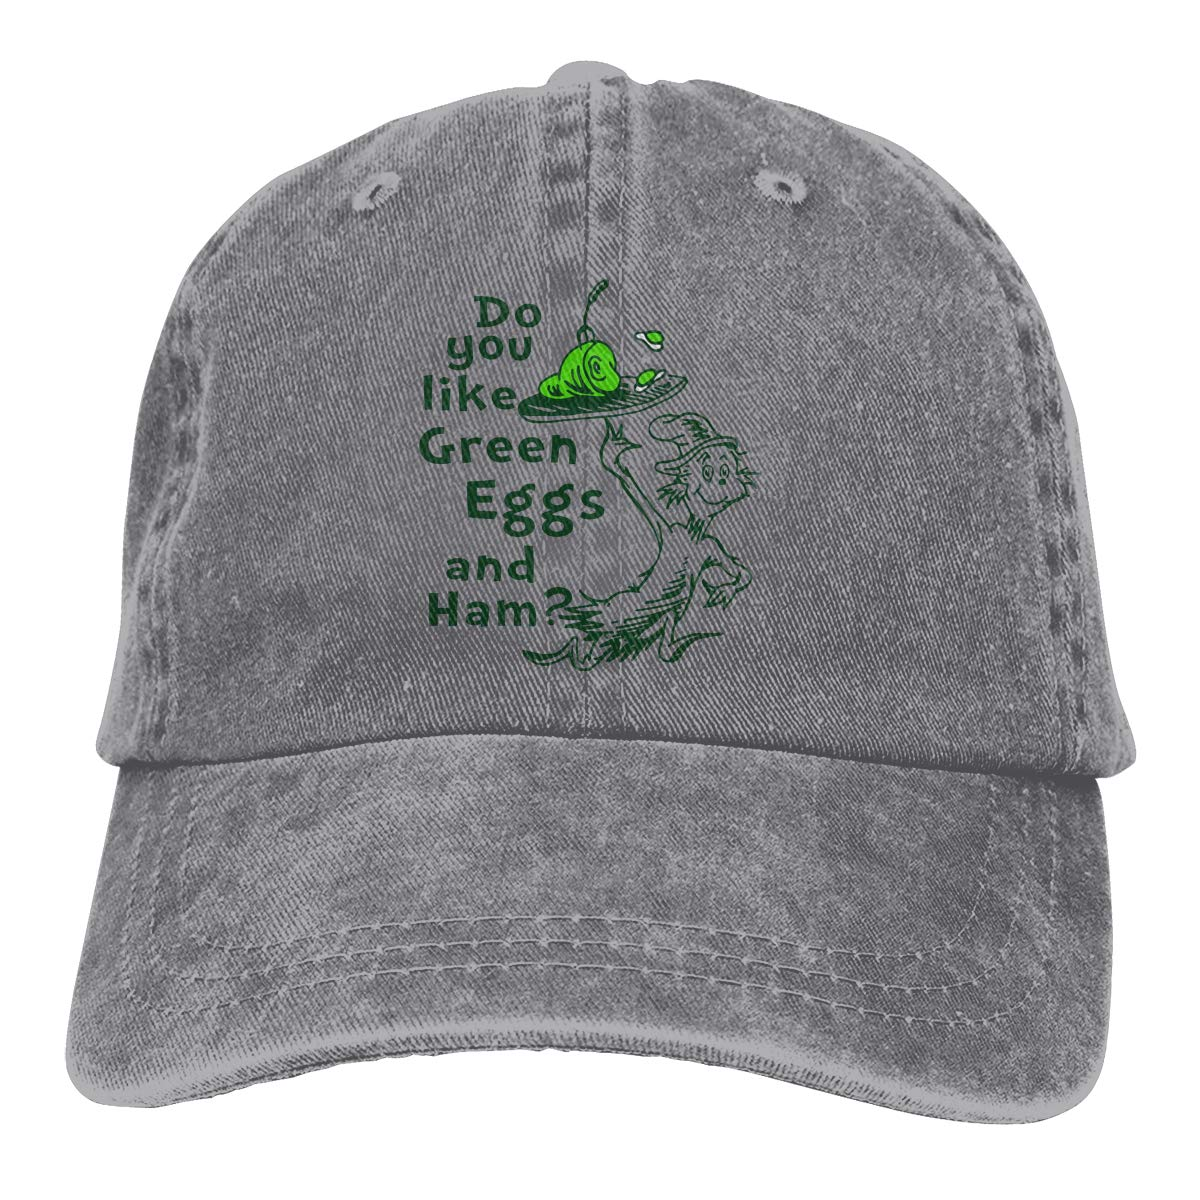 Feeling Unique Do-You-Like-Green-Eggs-and-Ham Vintage Jeans Baseball Cap Classic Cotton Dad Hat Adjustable Plain Cap Black